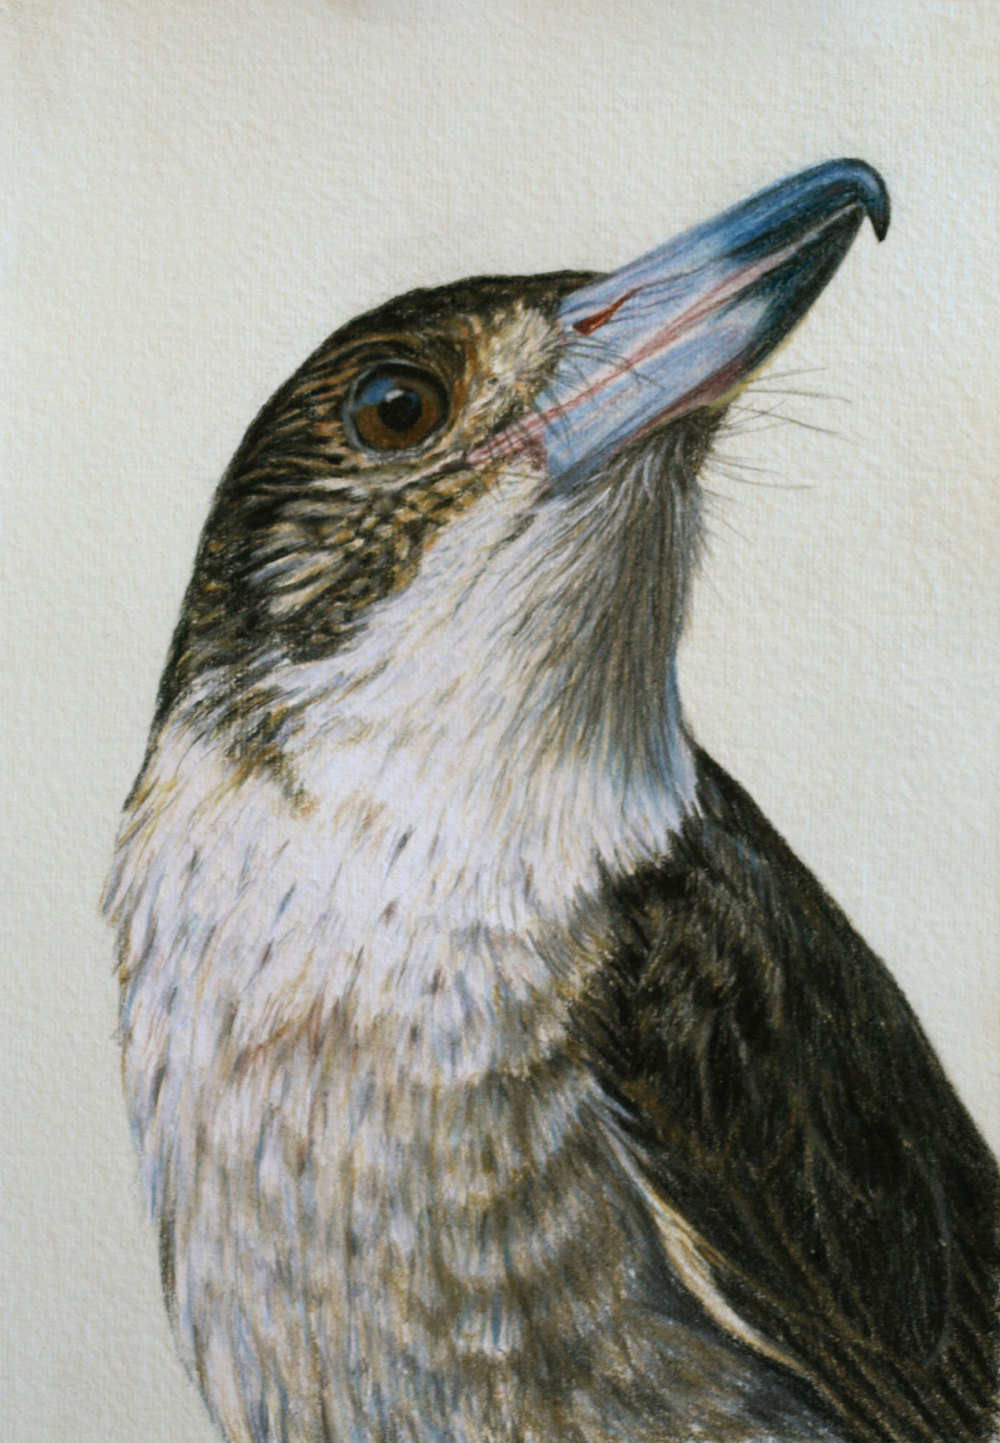 butcher-bird-2-drawing-rachel-newling.jpg